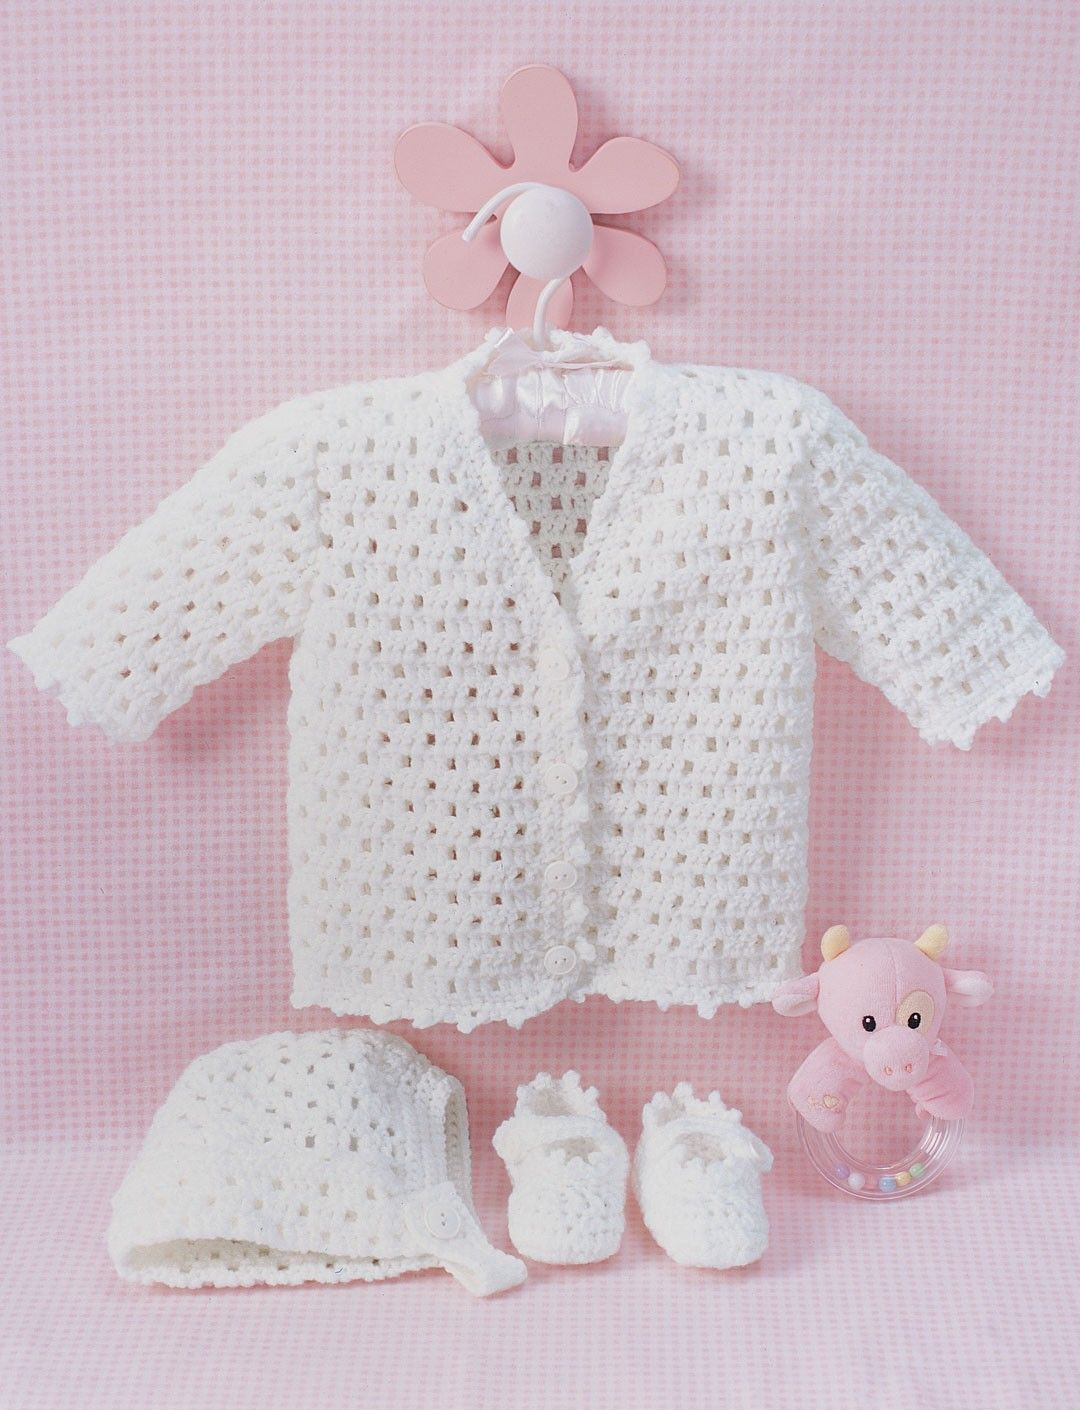 Yarnspirations.com - Bernat Lacy Set to Crochet | Yarnspirations ...